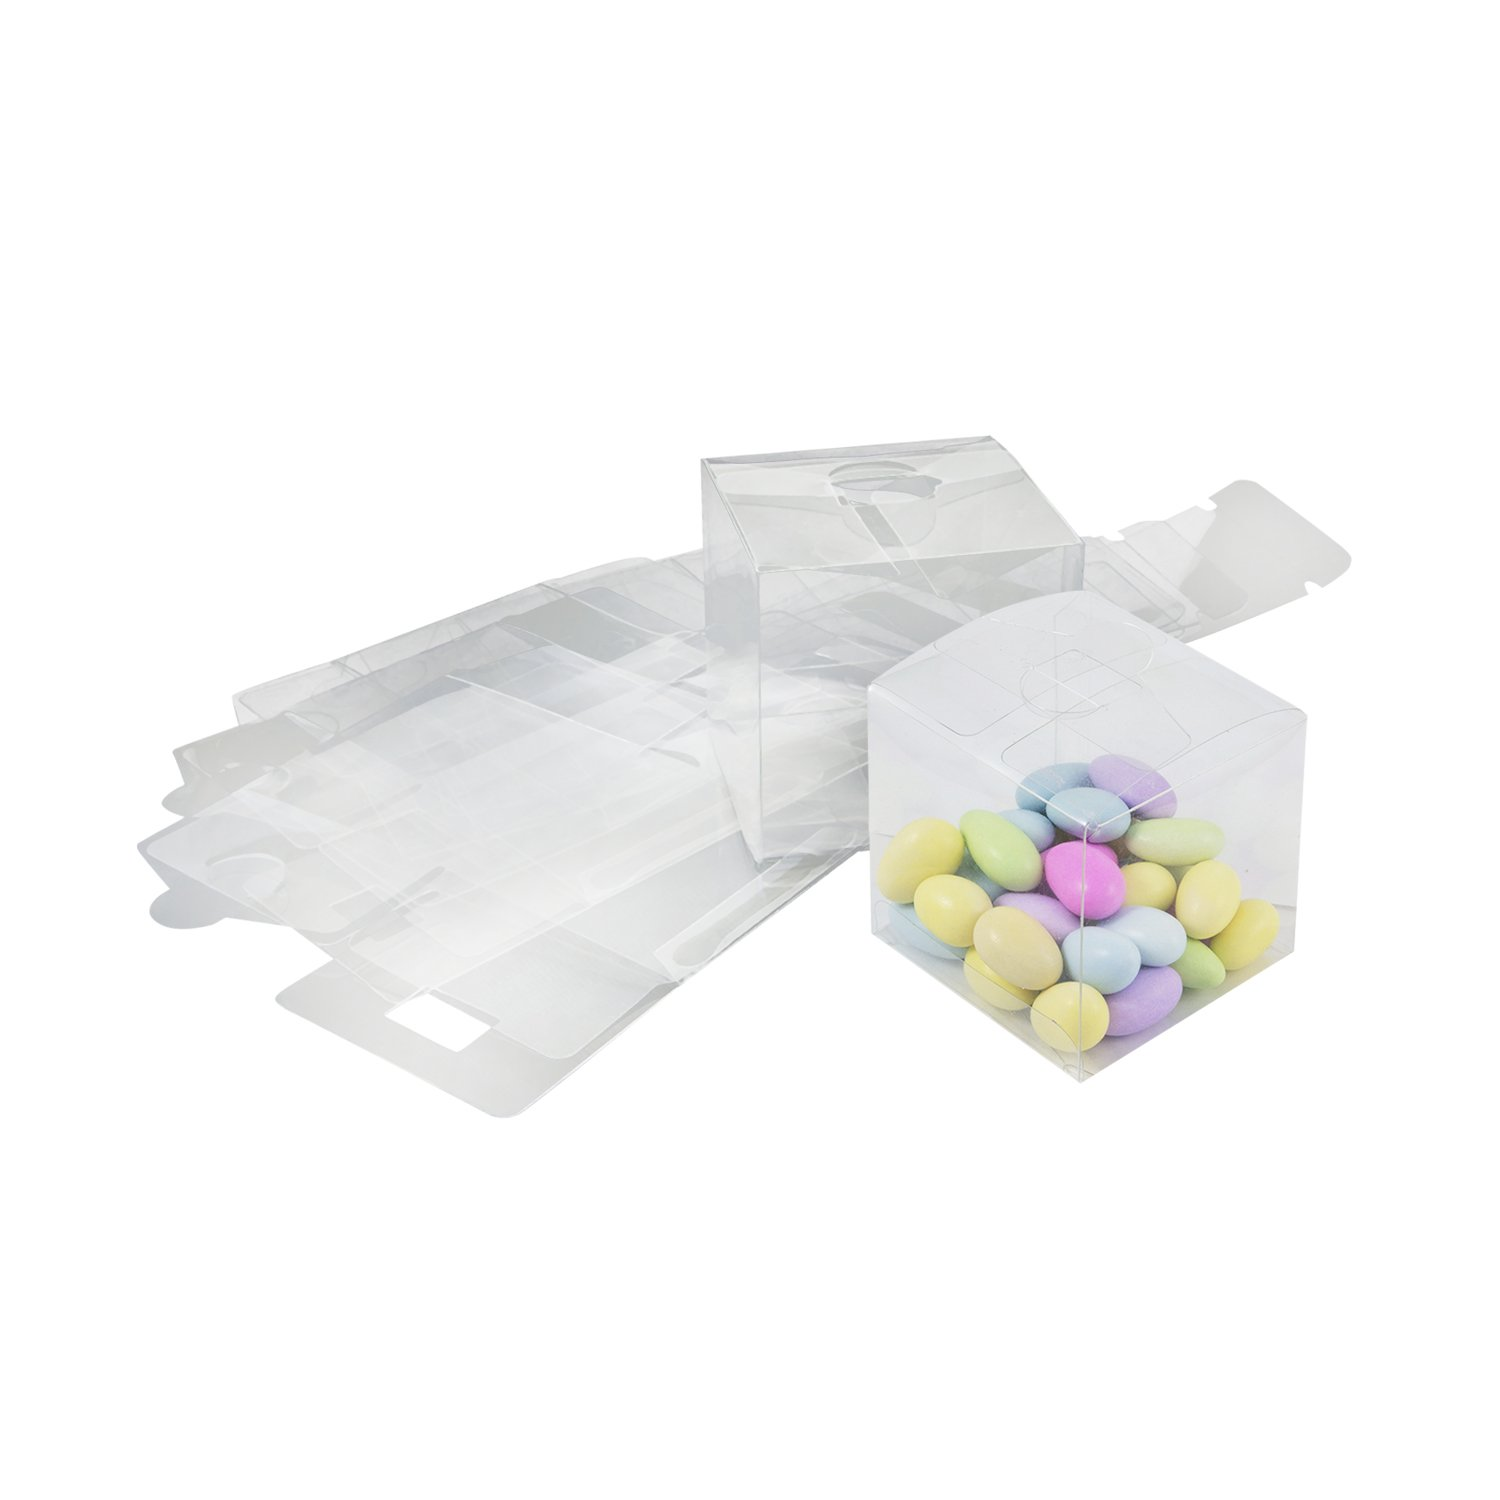 Houseables Clear Favor Boxes, Plastic Gift Box, 3x3x3 Inch, 50 Pack, Transparent, Small, Square, Storage Bins, Empty Boxed Containers, for Wedding, Party, Birthday Presents, Candy, Cupcakes, Jewelry ClGiBo